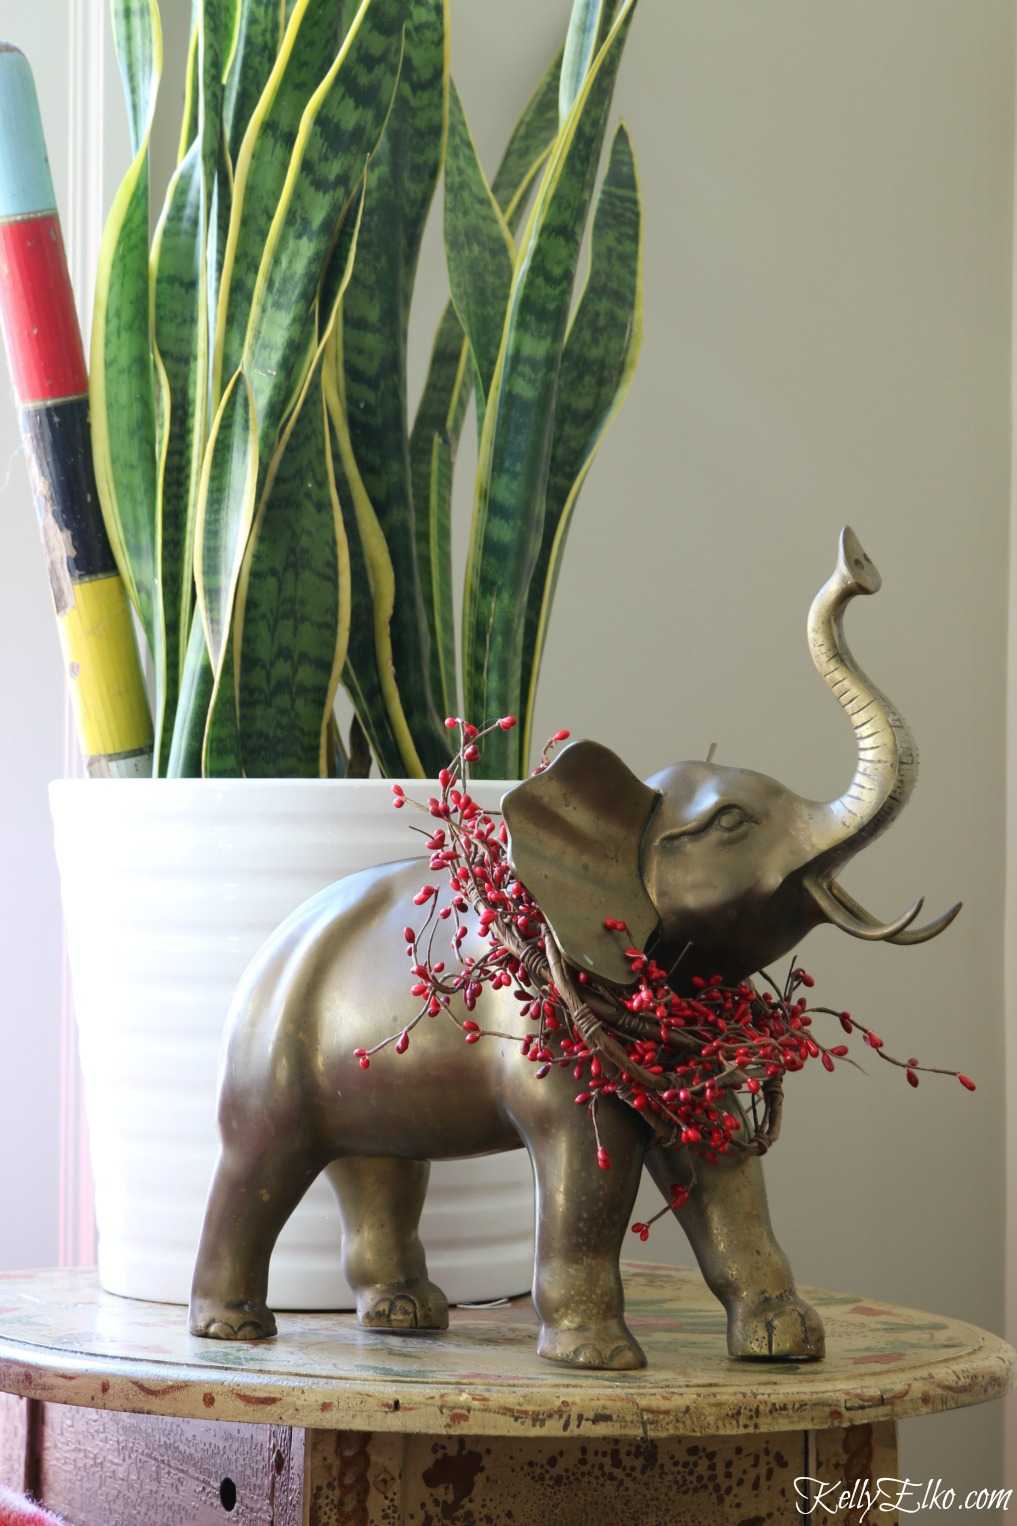 Vintage brass elephant gets a Christmas berry wreath kellyelko.com